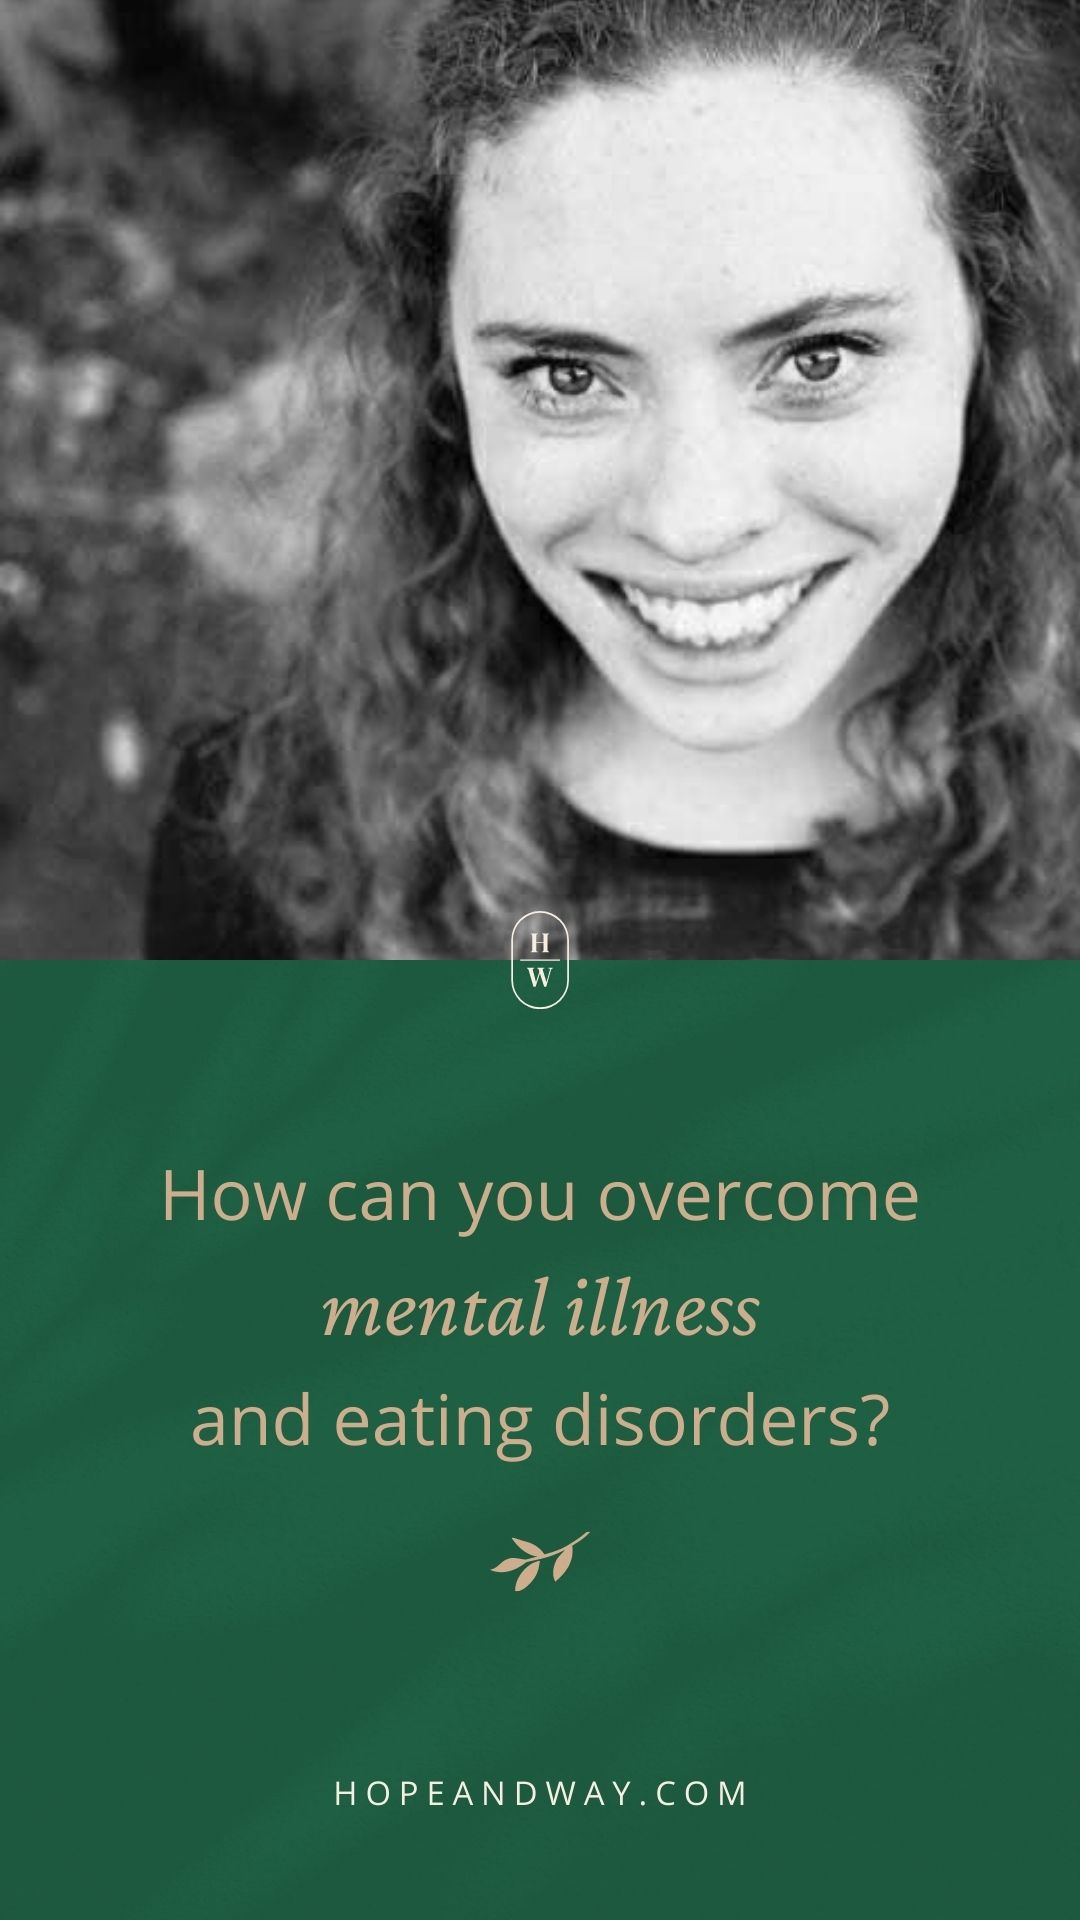 How can you overcome mental illness and eating disorders?